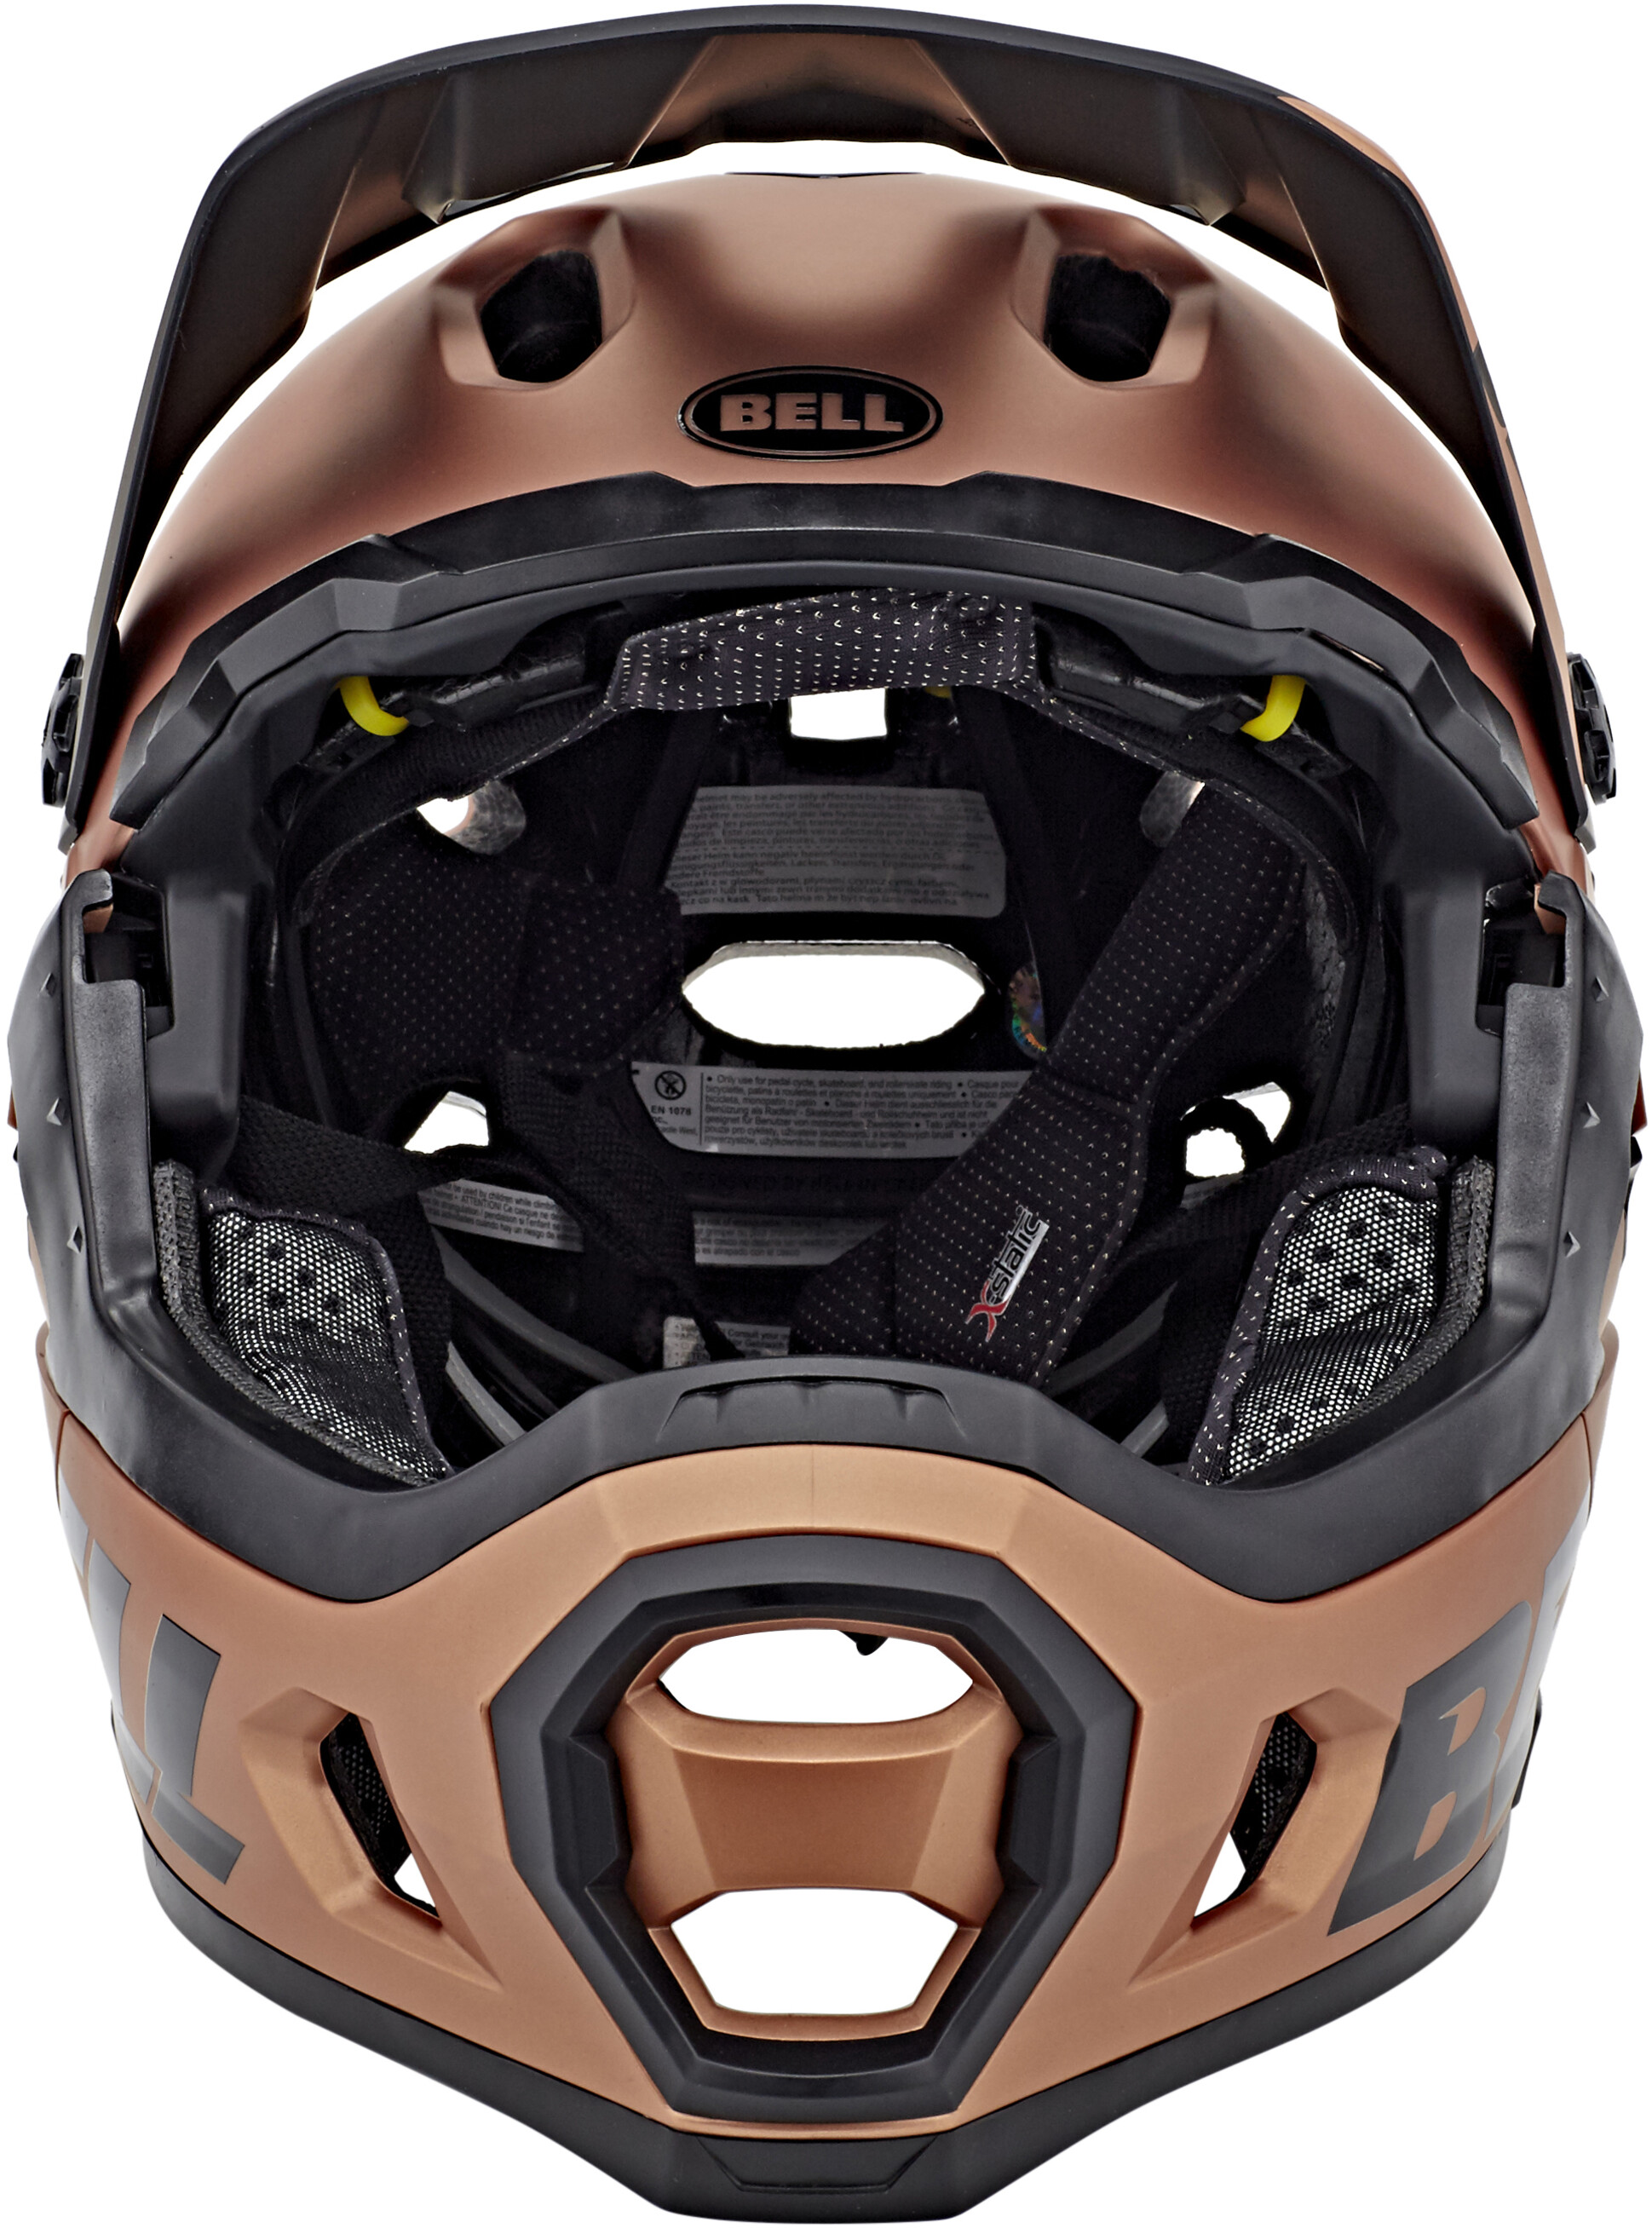 bell super dh mips mtb helmet matte gloss copper online kaufen. Black Bedroom Furniture Sets. Home Design Ideas